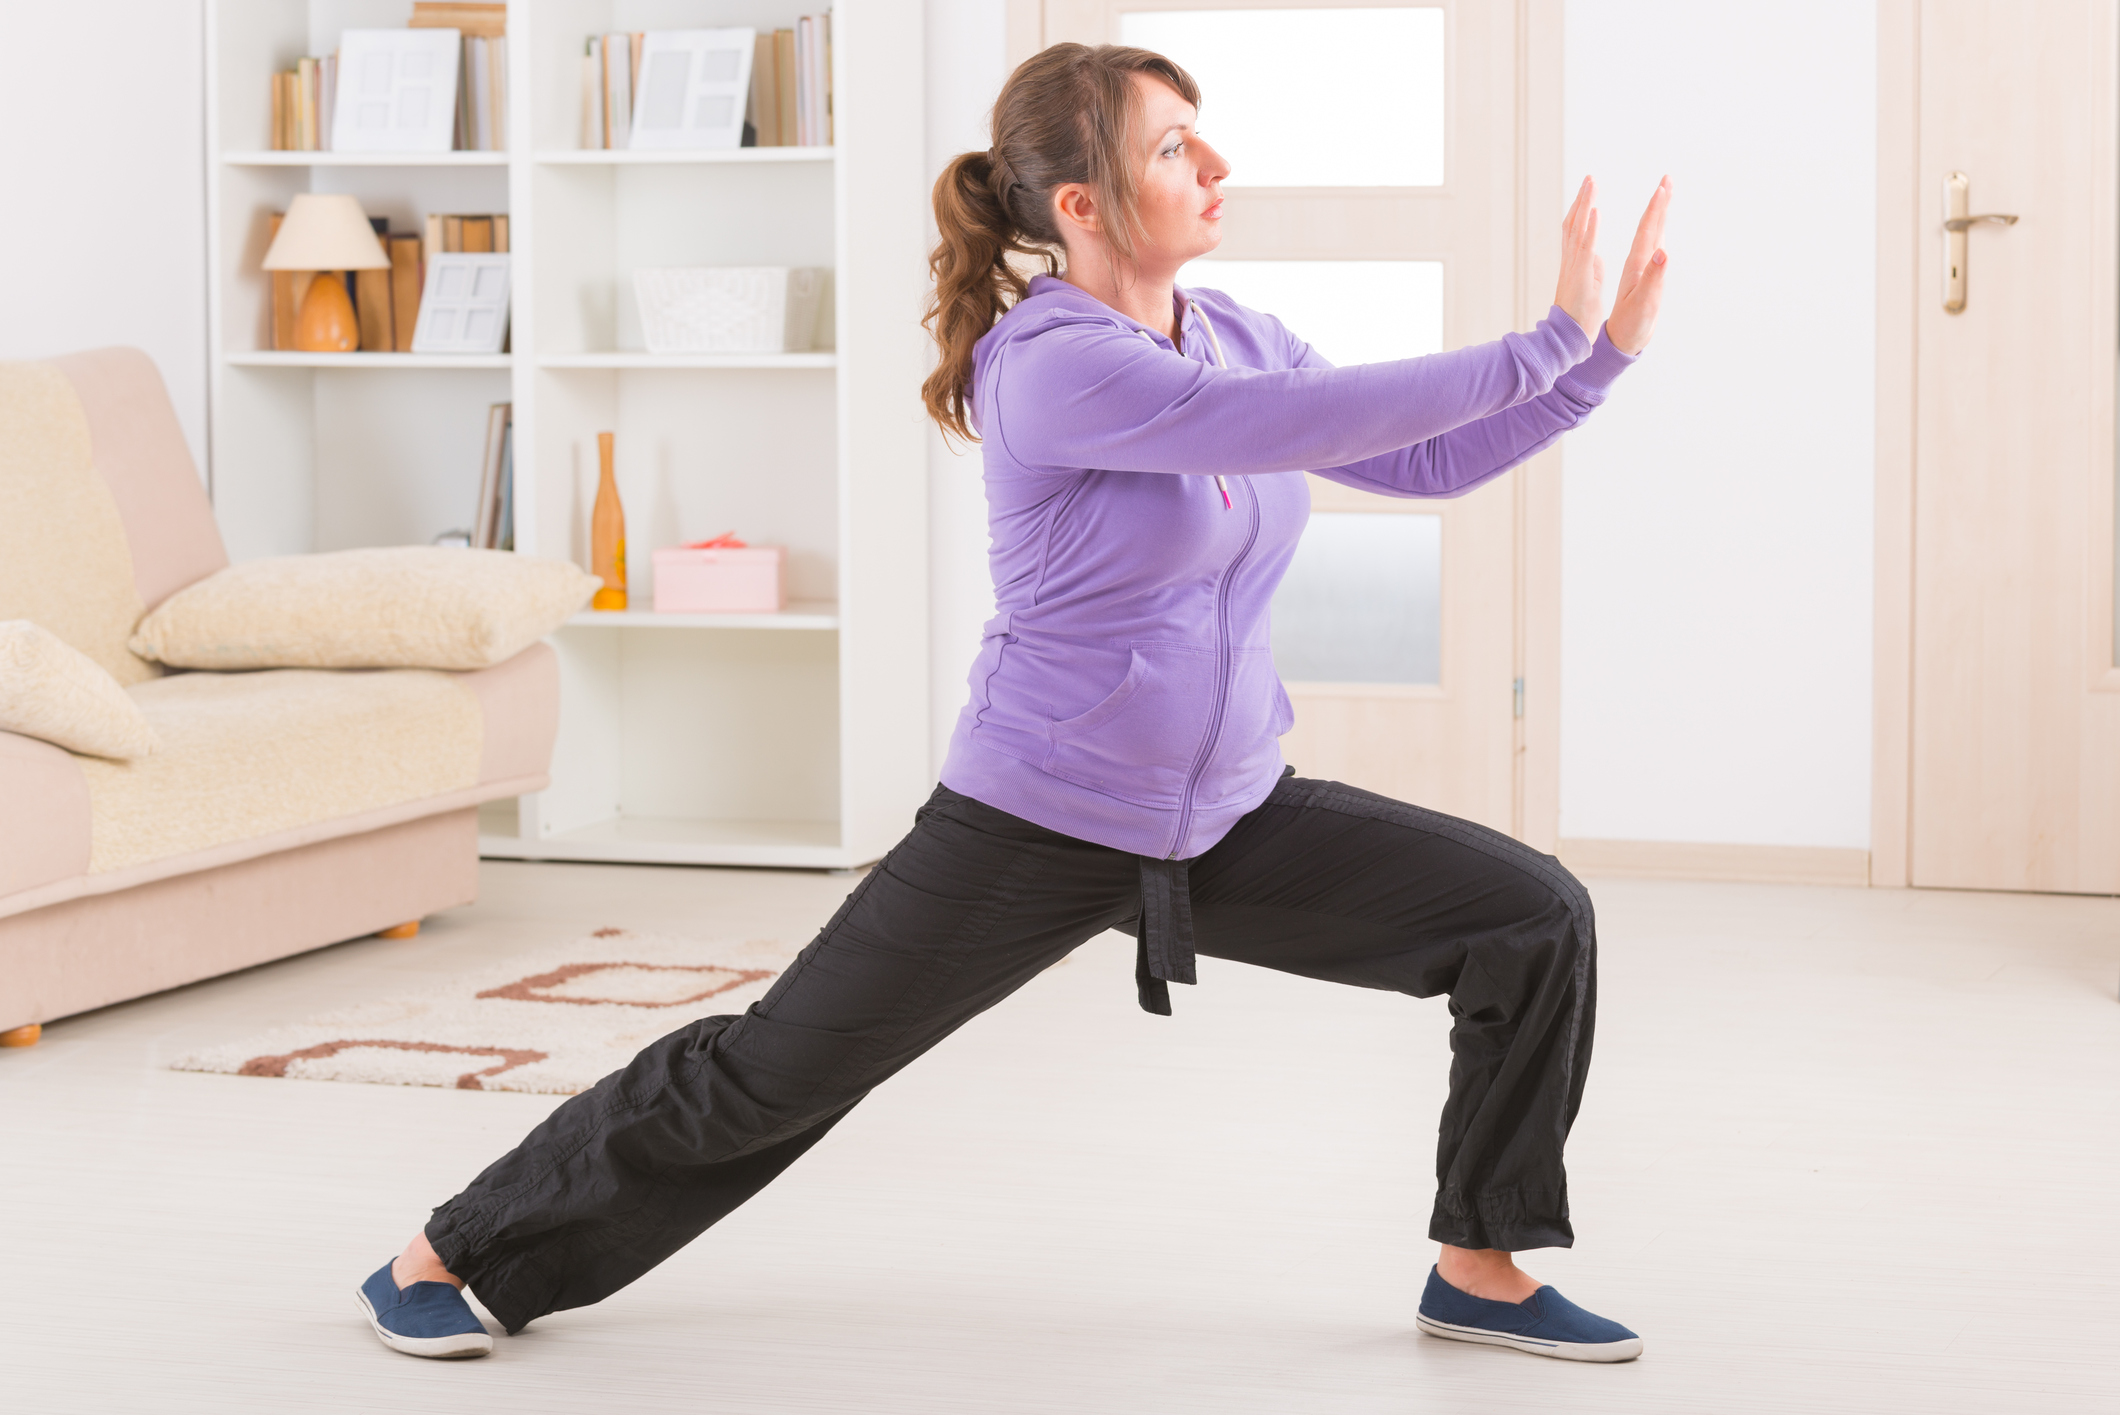 Tai chi for fibromyalgia